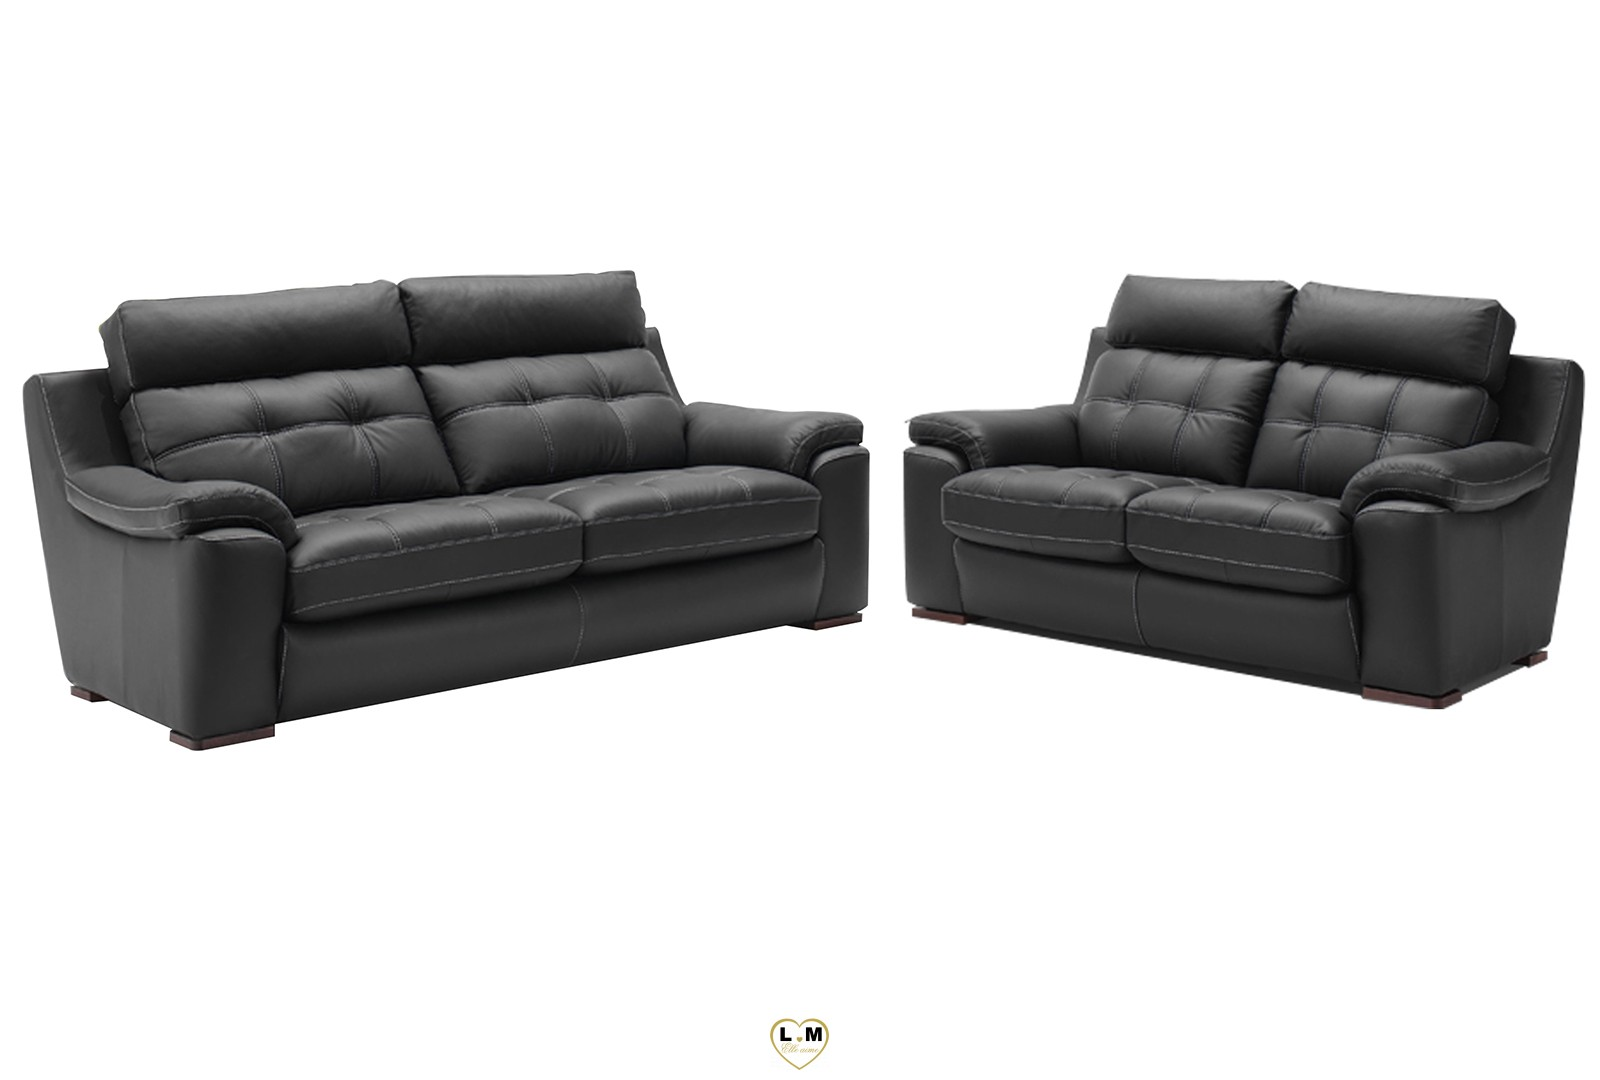 hera relax salon cuir l 39 ensemble canapes 3 2 places a b lignemeuble com. Black Bedroom Furniture Sets. Home Design Ideas